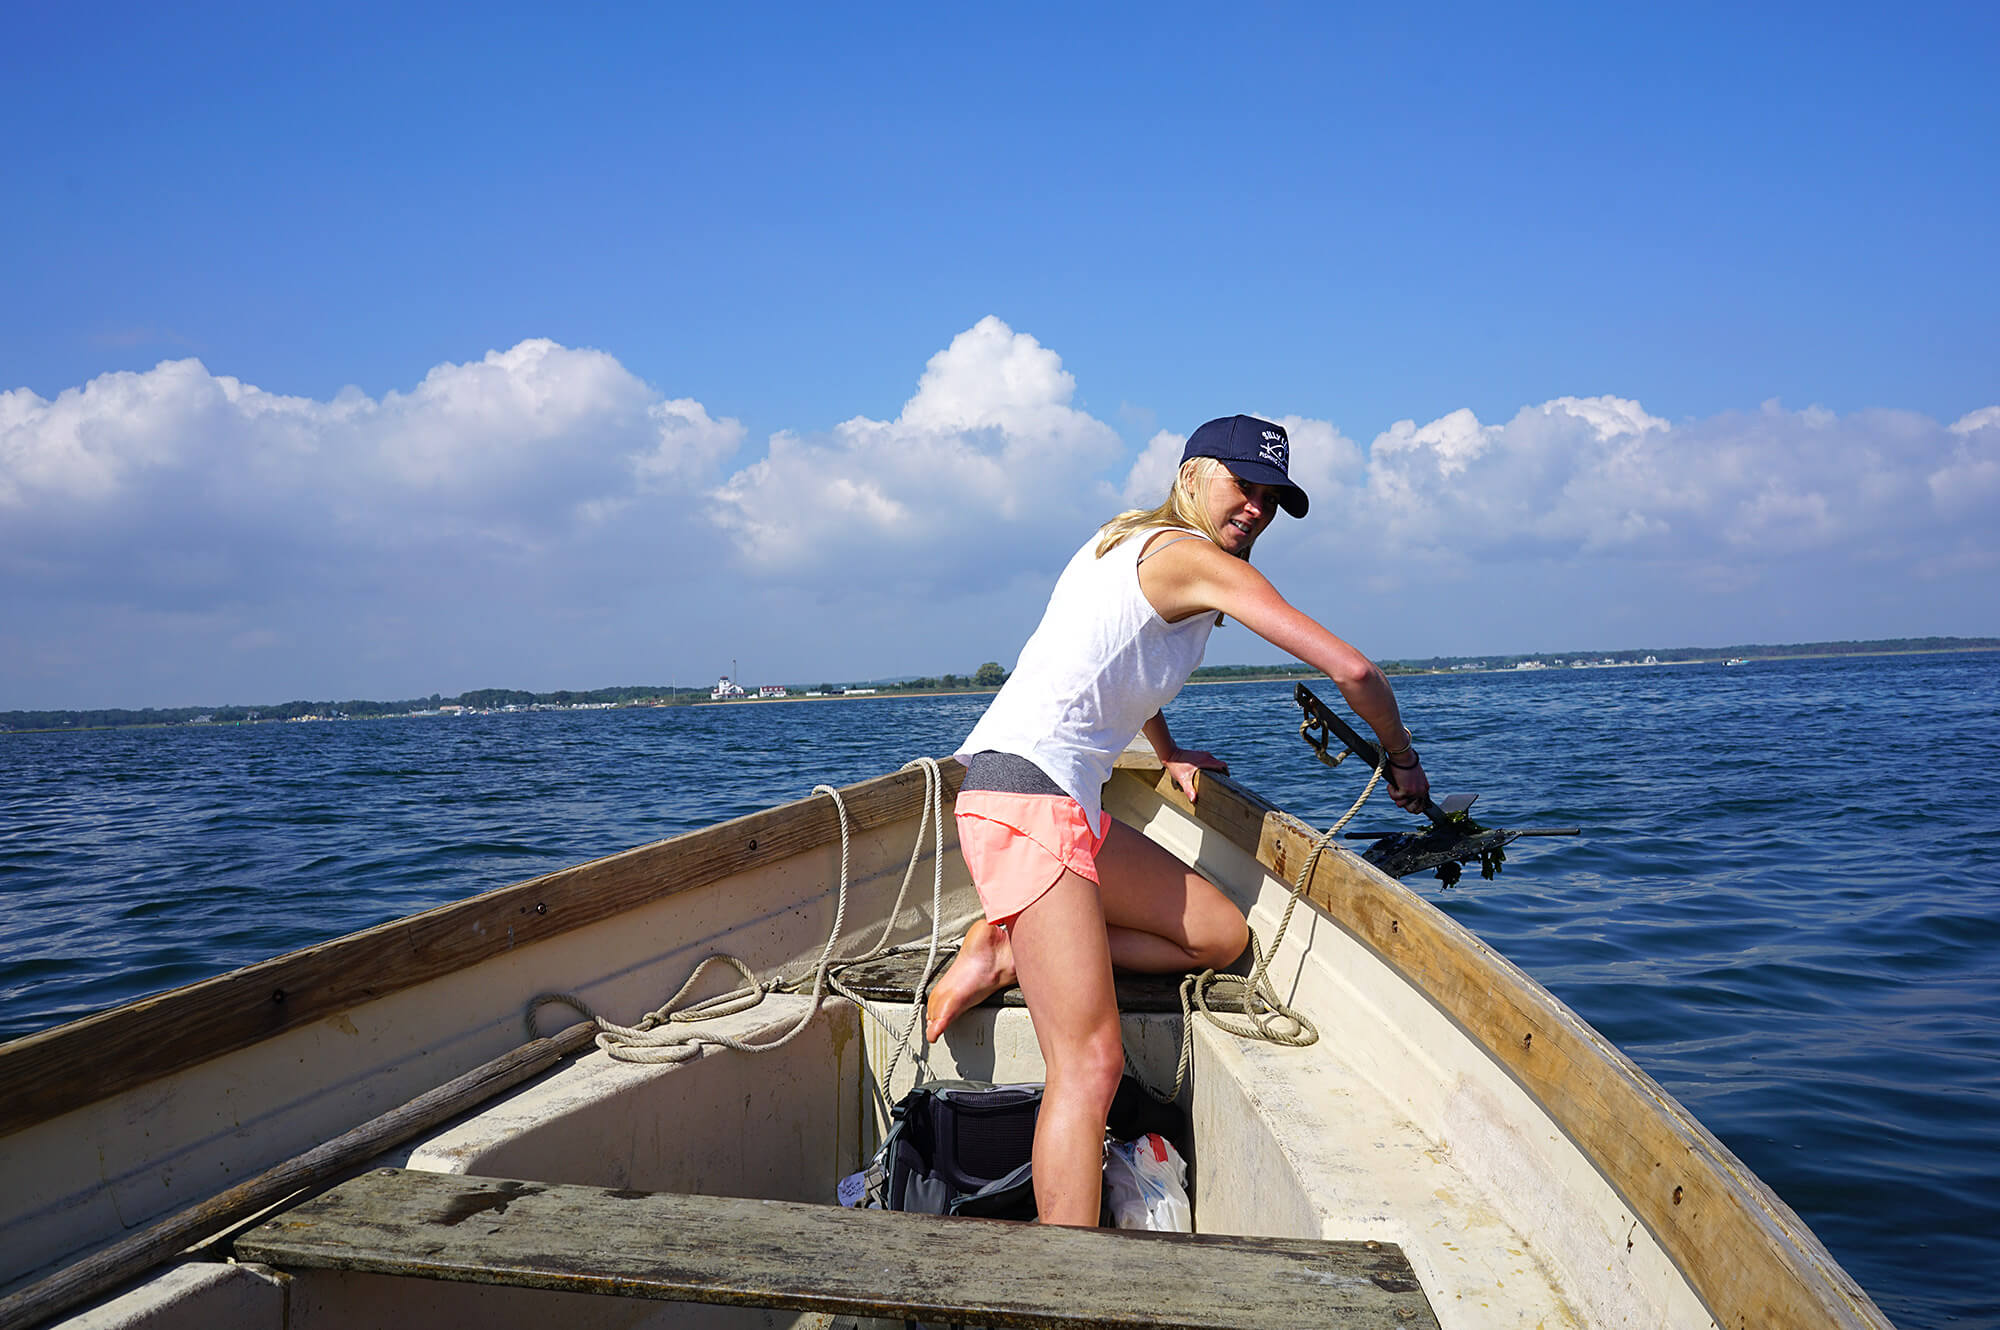 Lyman pulling up the anchor